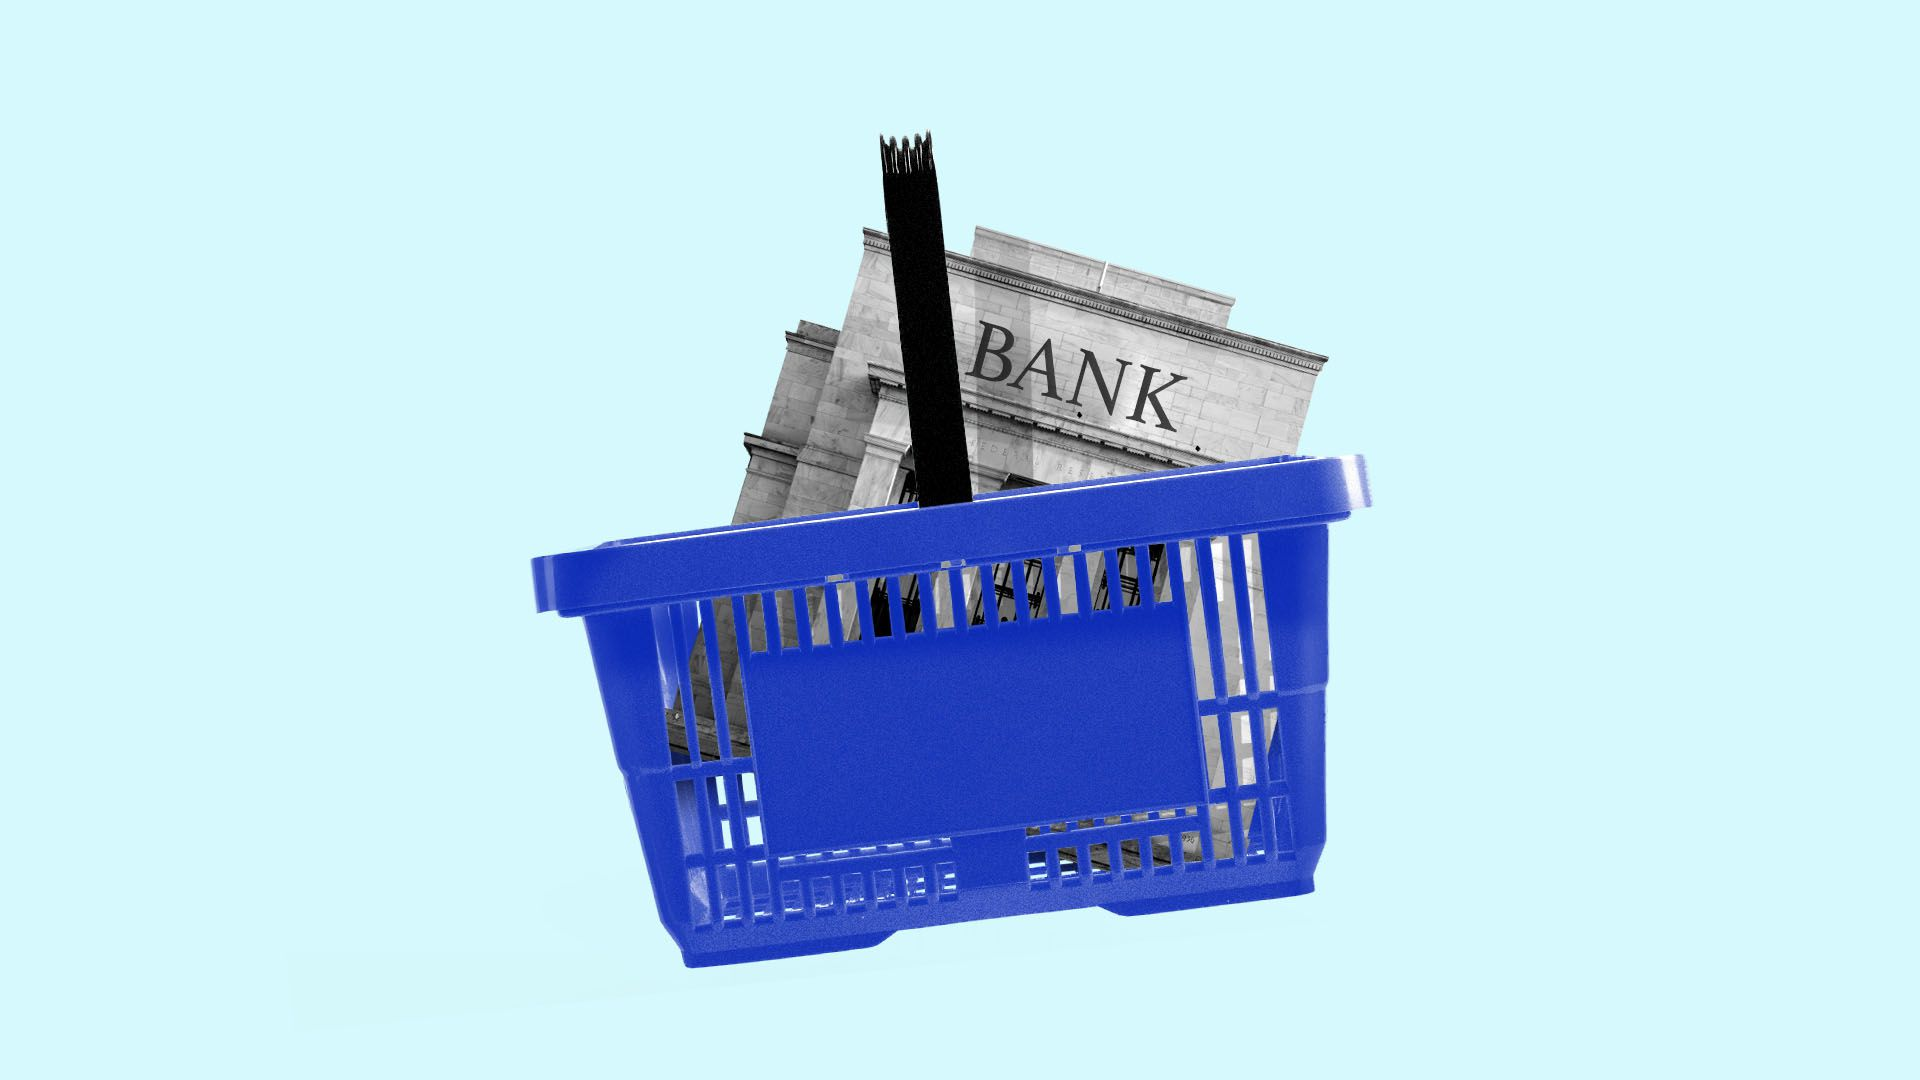 llustration of a supermarket basket with a bank inside